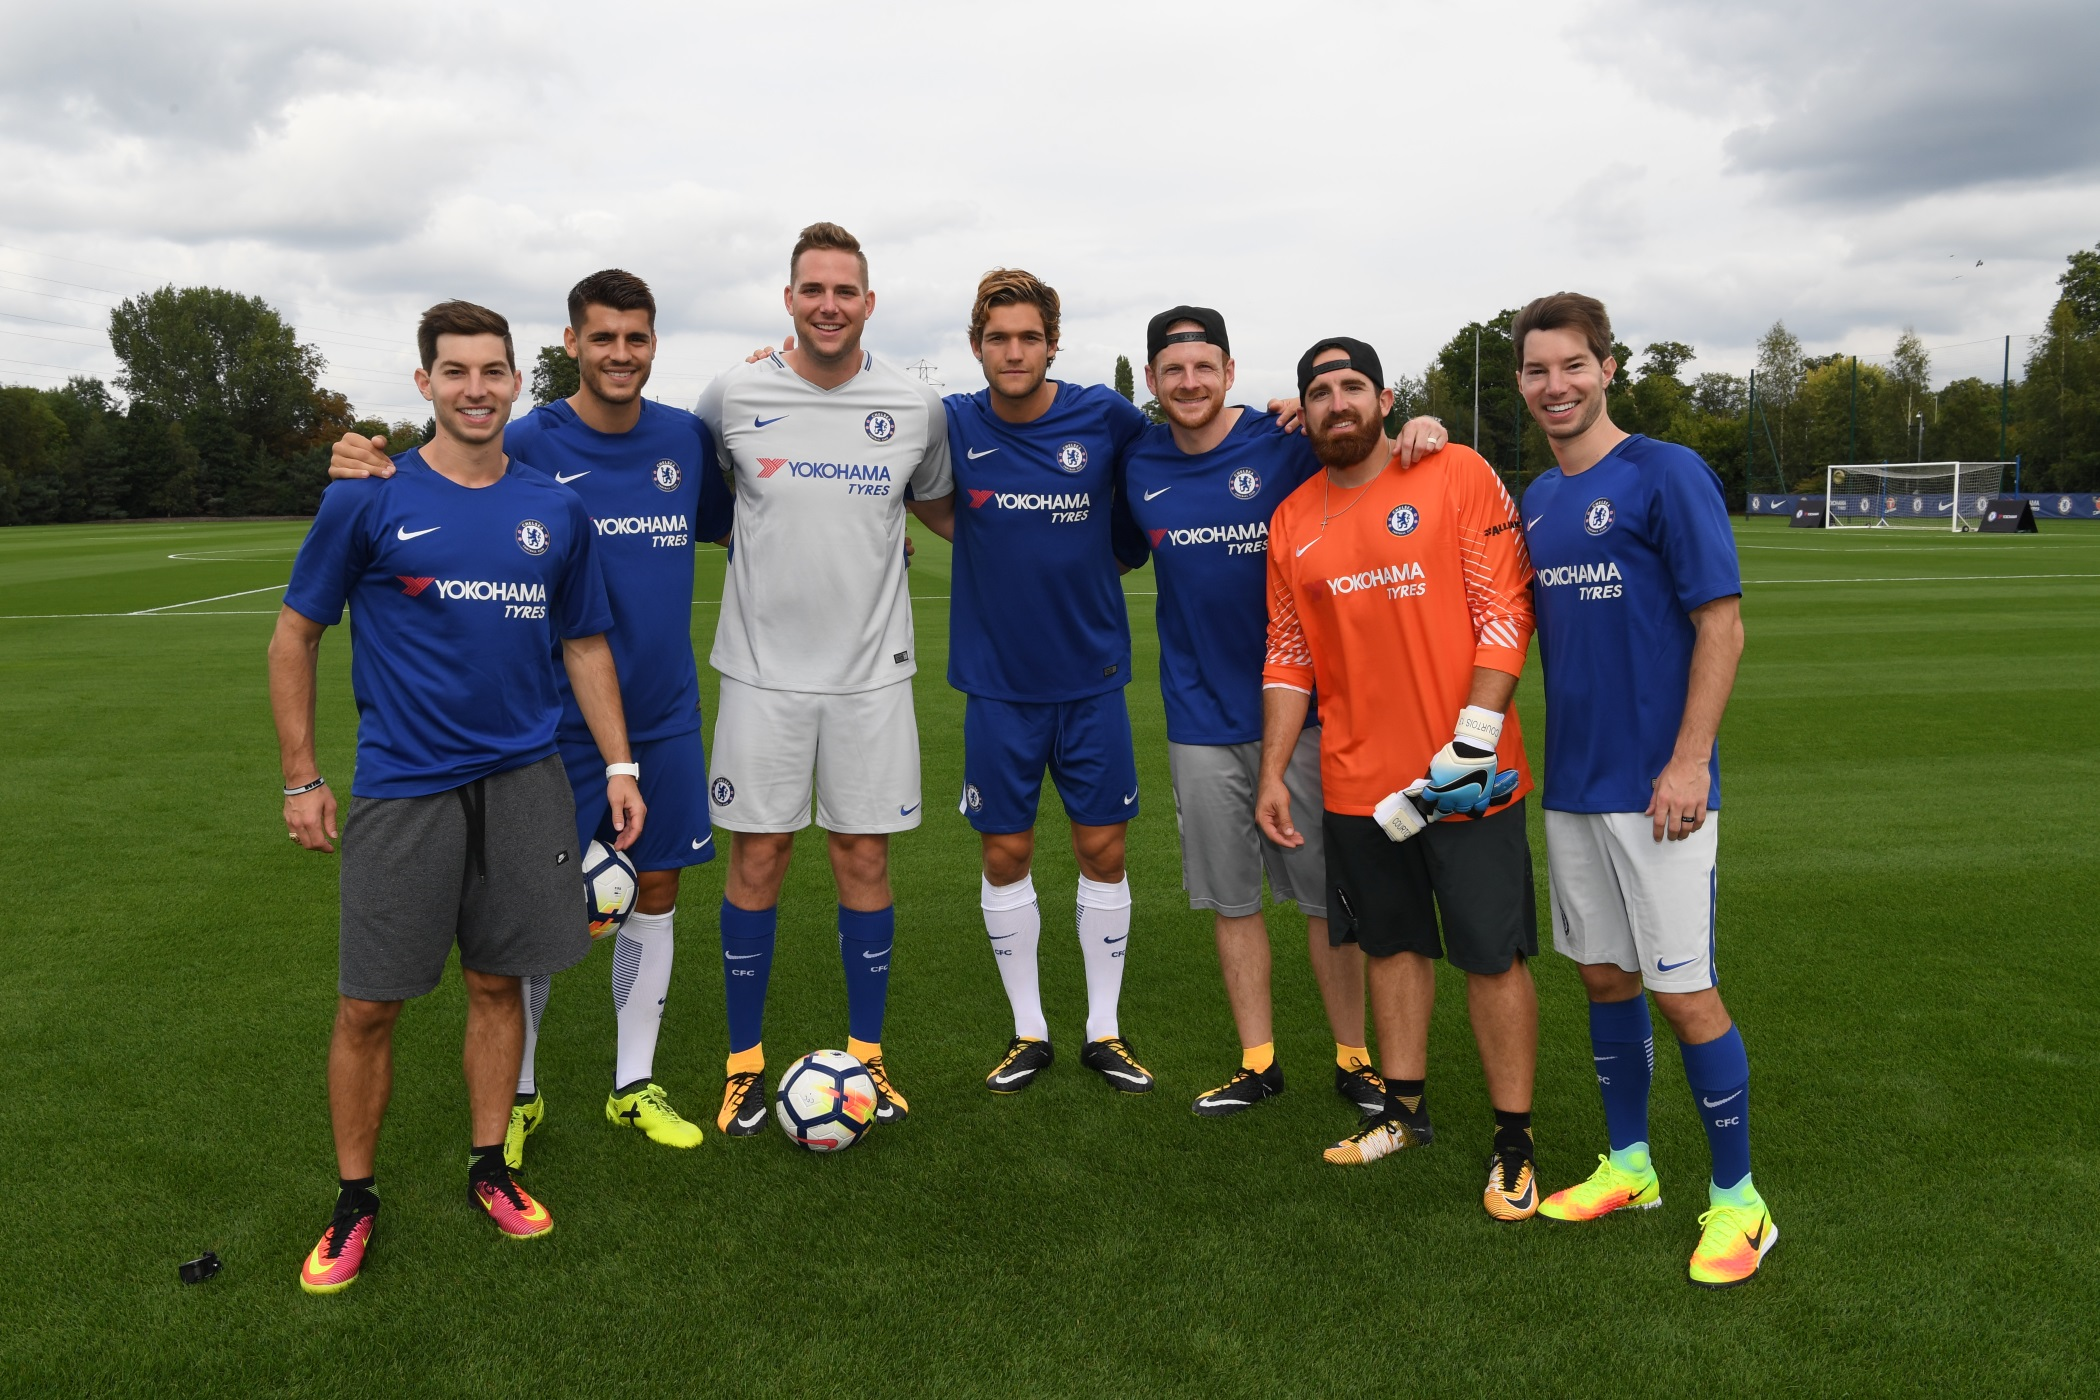 Yokohama and Chelsea FC Team Up with Dude Perfect on New Soccer Trick Shots Video